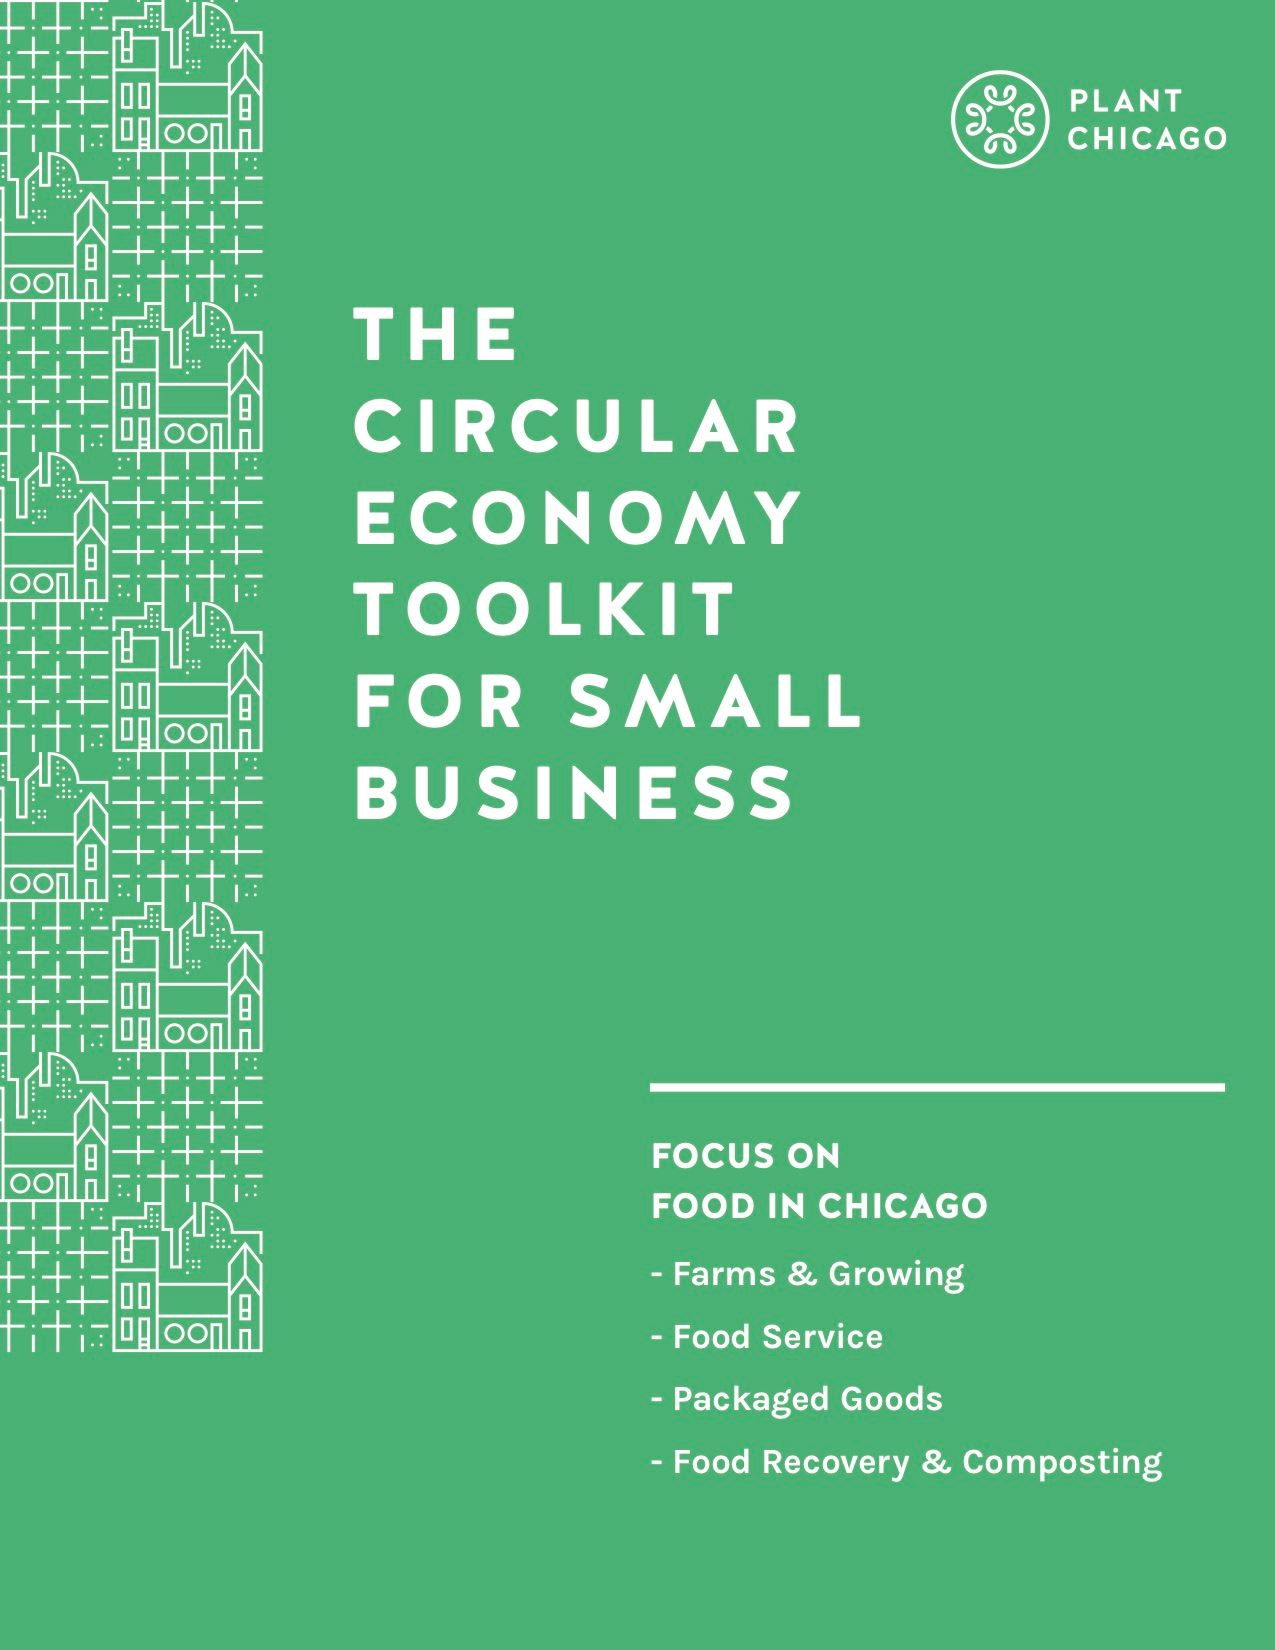 Plant-Chicago_Circular-Economy-Toolkit-for-Small-Business_Feb2020